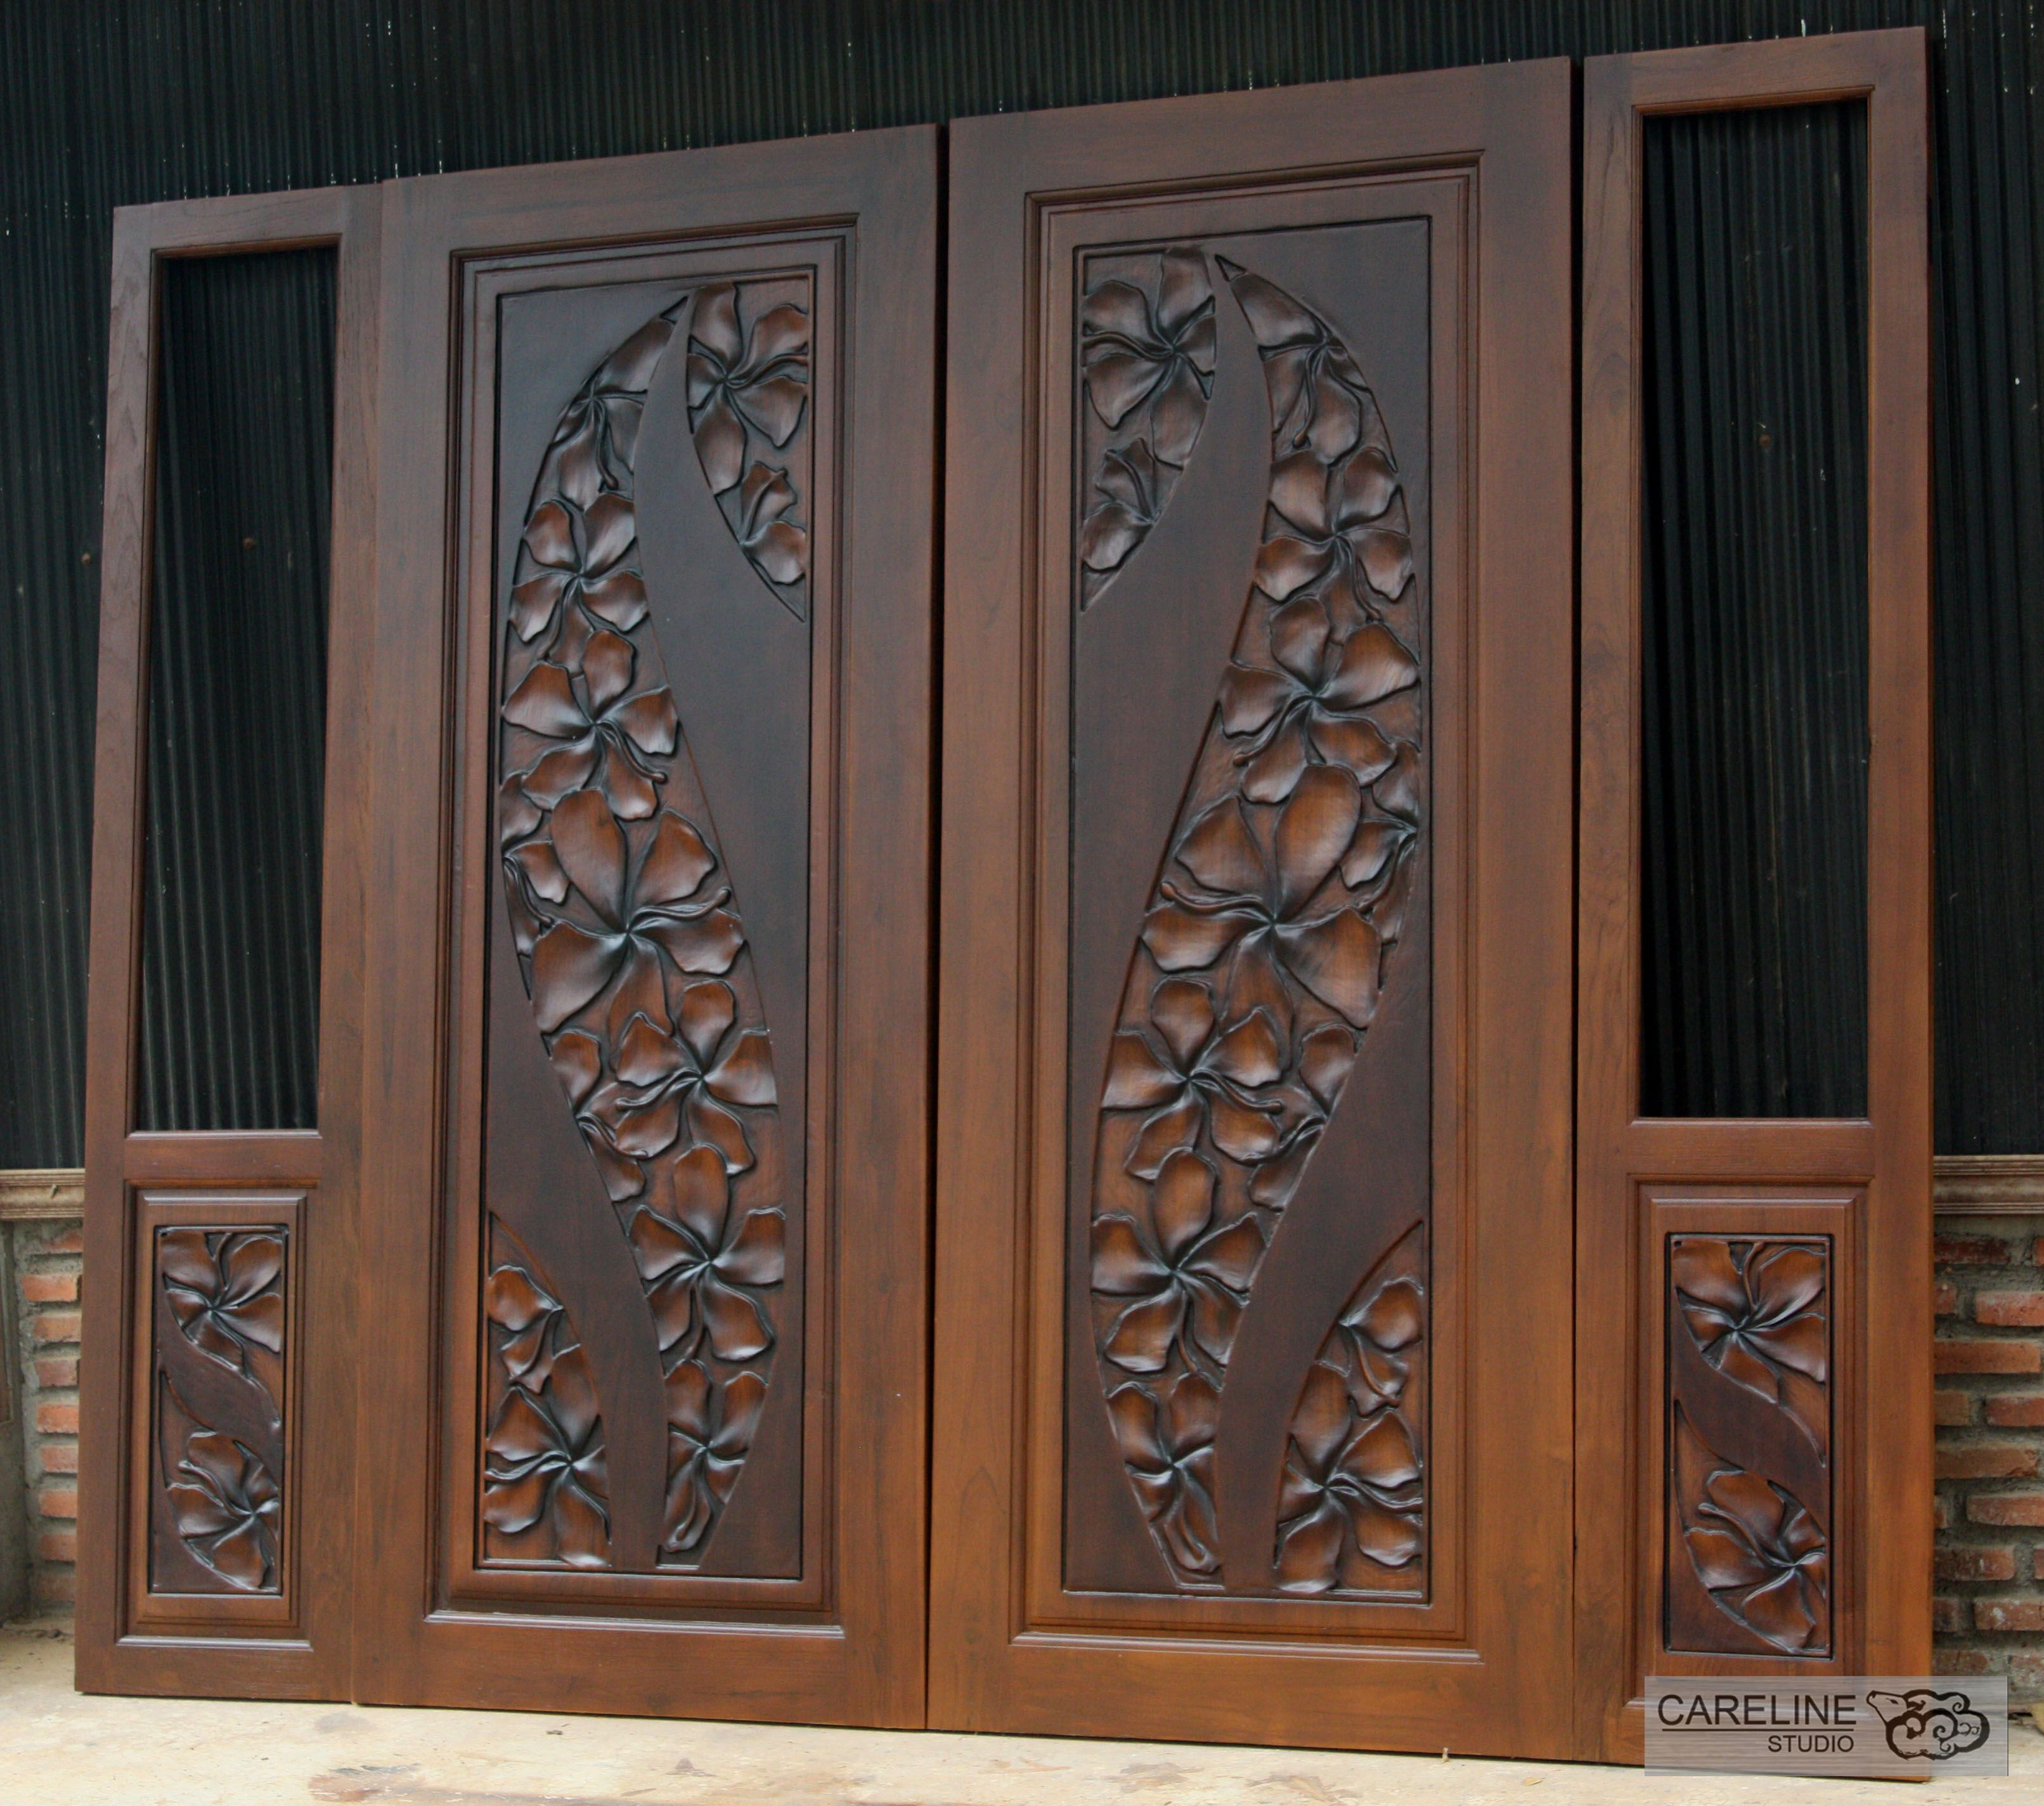 Our Teak Wooden Doors Are Designed And Manufactured By A Team Of Designers From Careline Studio With Ove Double Door Design Door Design Wood Wooden Door Design